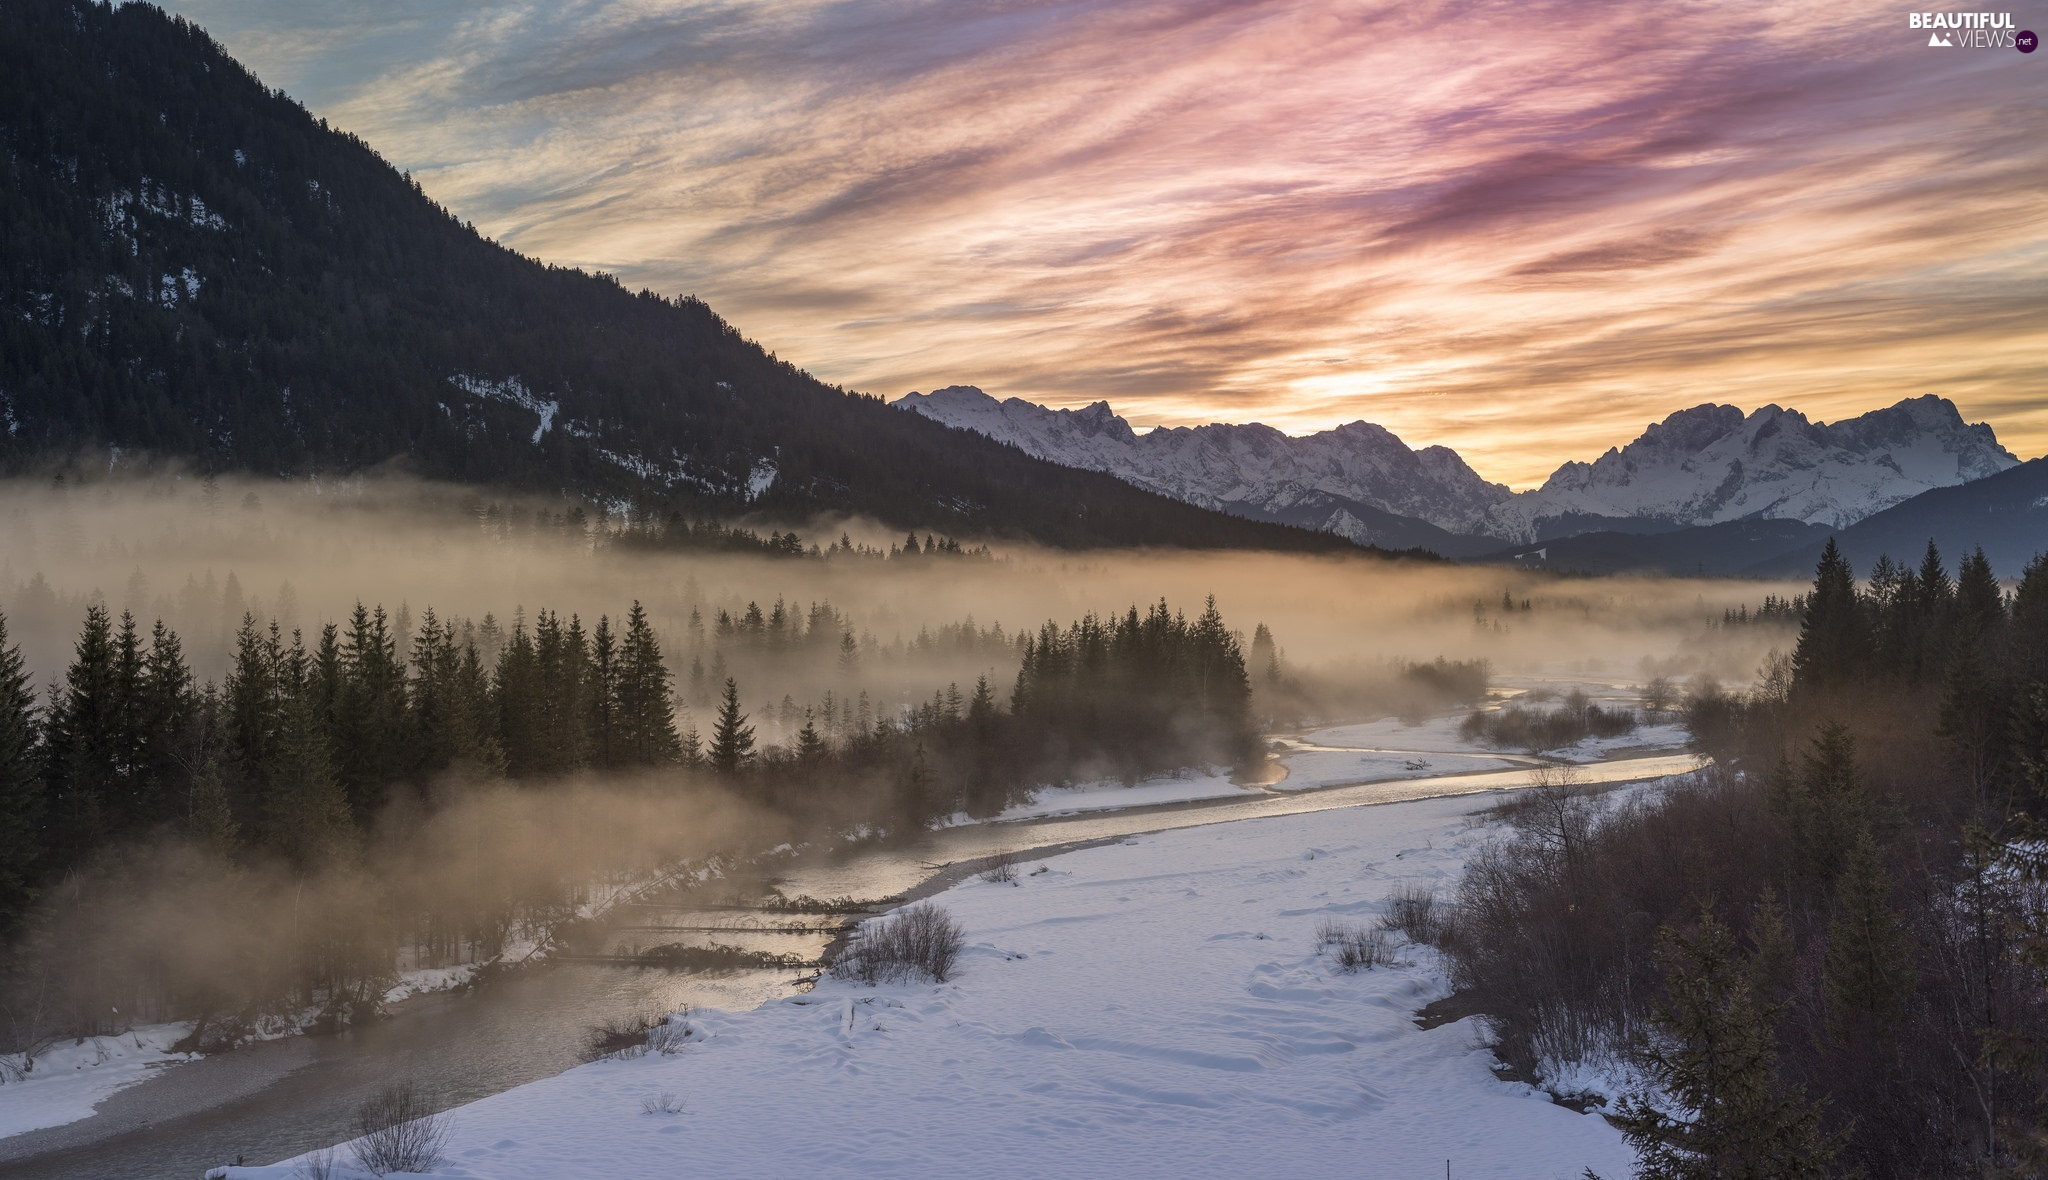 Mountains, winter, viewes, Fog, trees, River